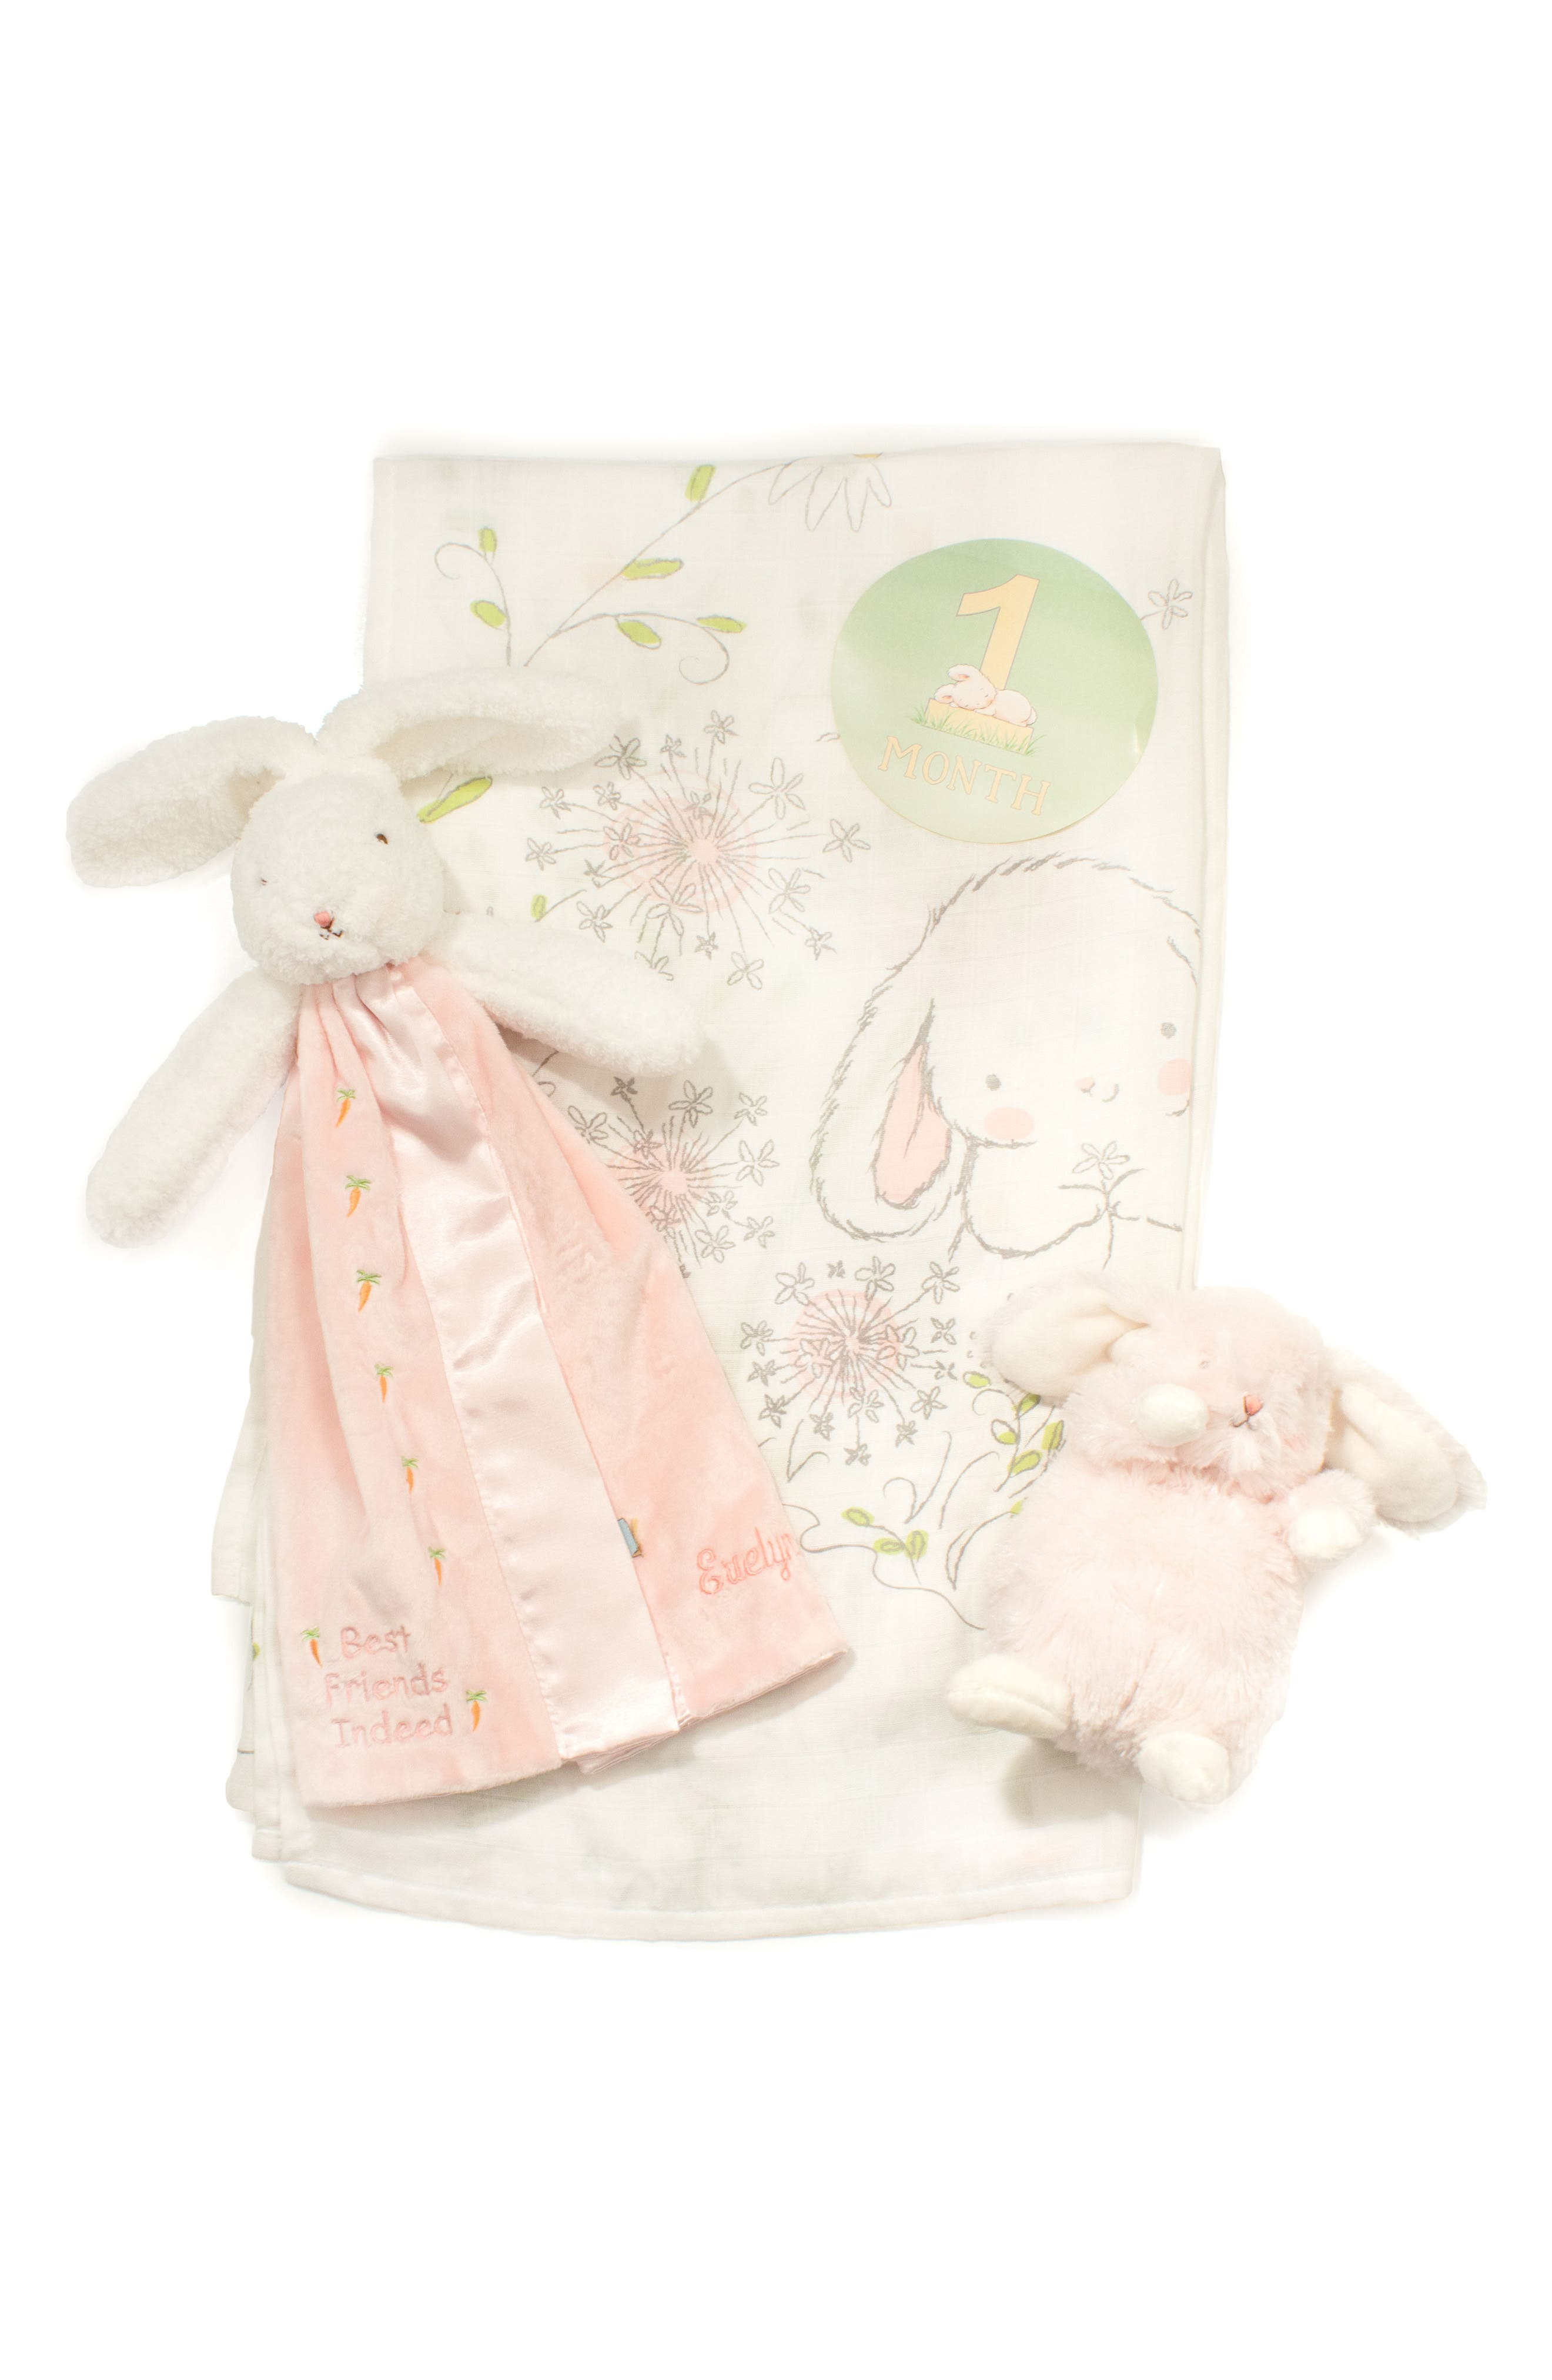 Growing Like a Weed Milestone Stickers, Swaddle Blanket, Lovie & Stuffed Animal Set,                             Main thumbnail 1, color,                             SWEET AND TENDER WHITE